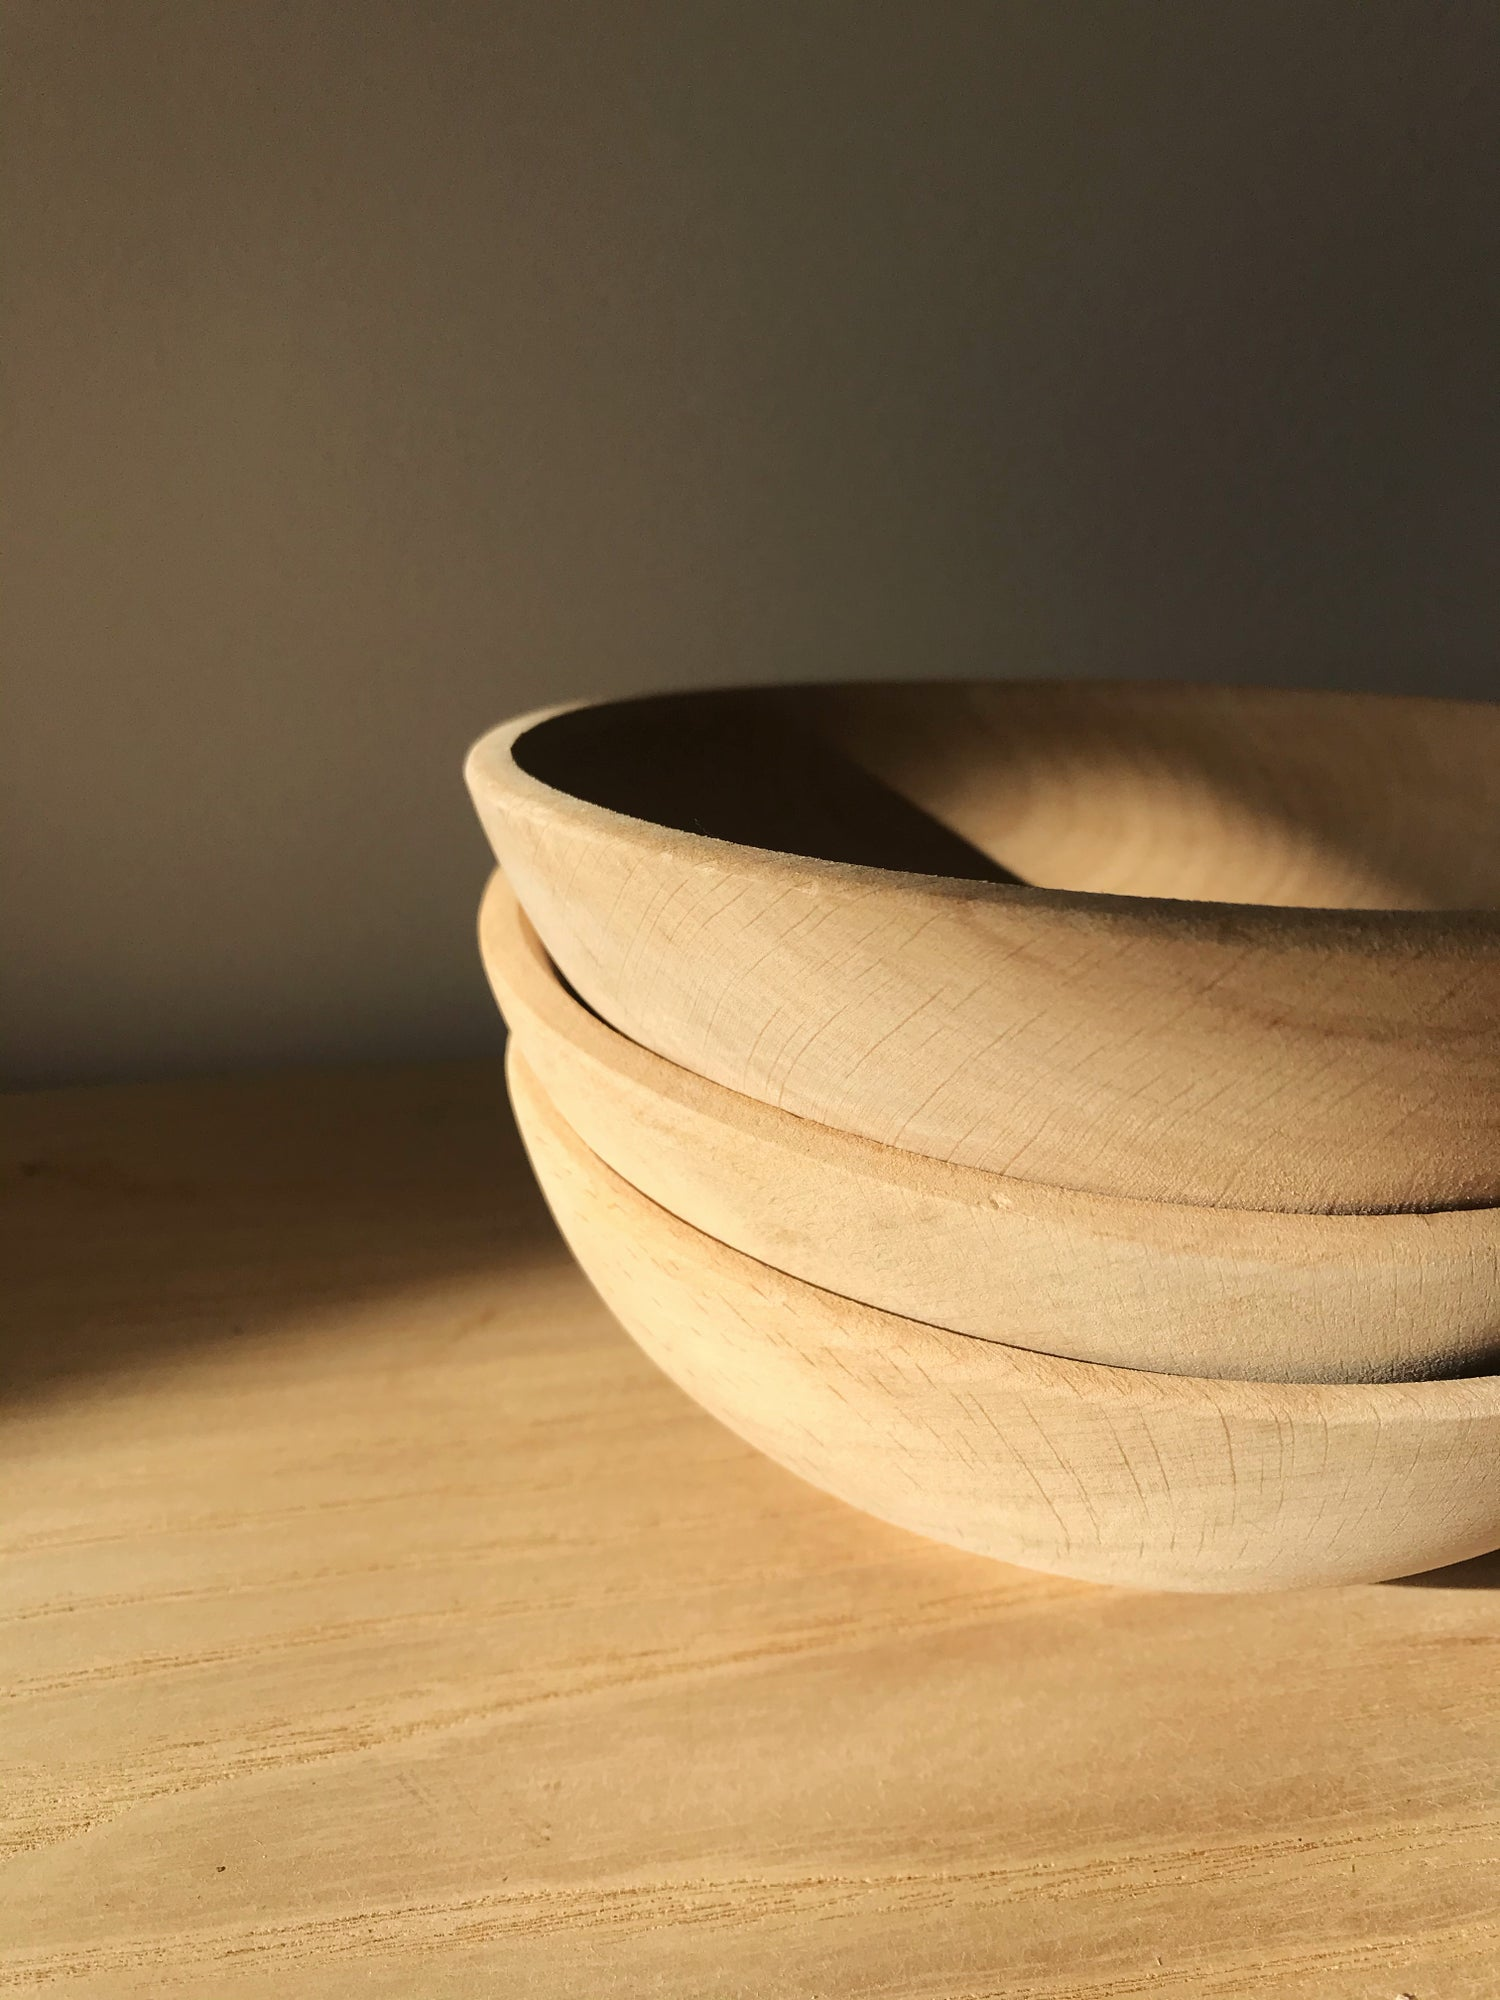 Image of Small Raw Wood Bowl #120